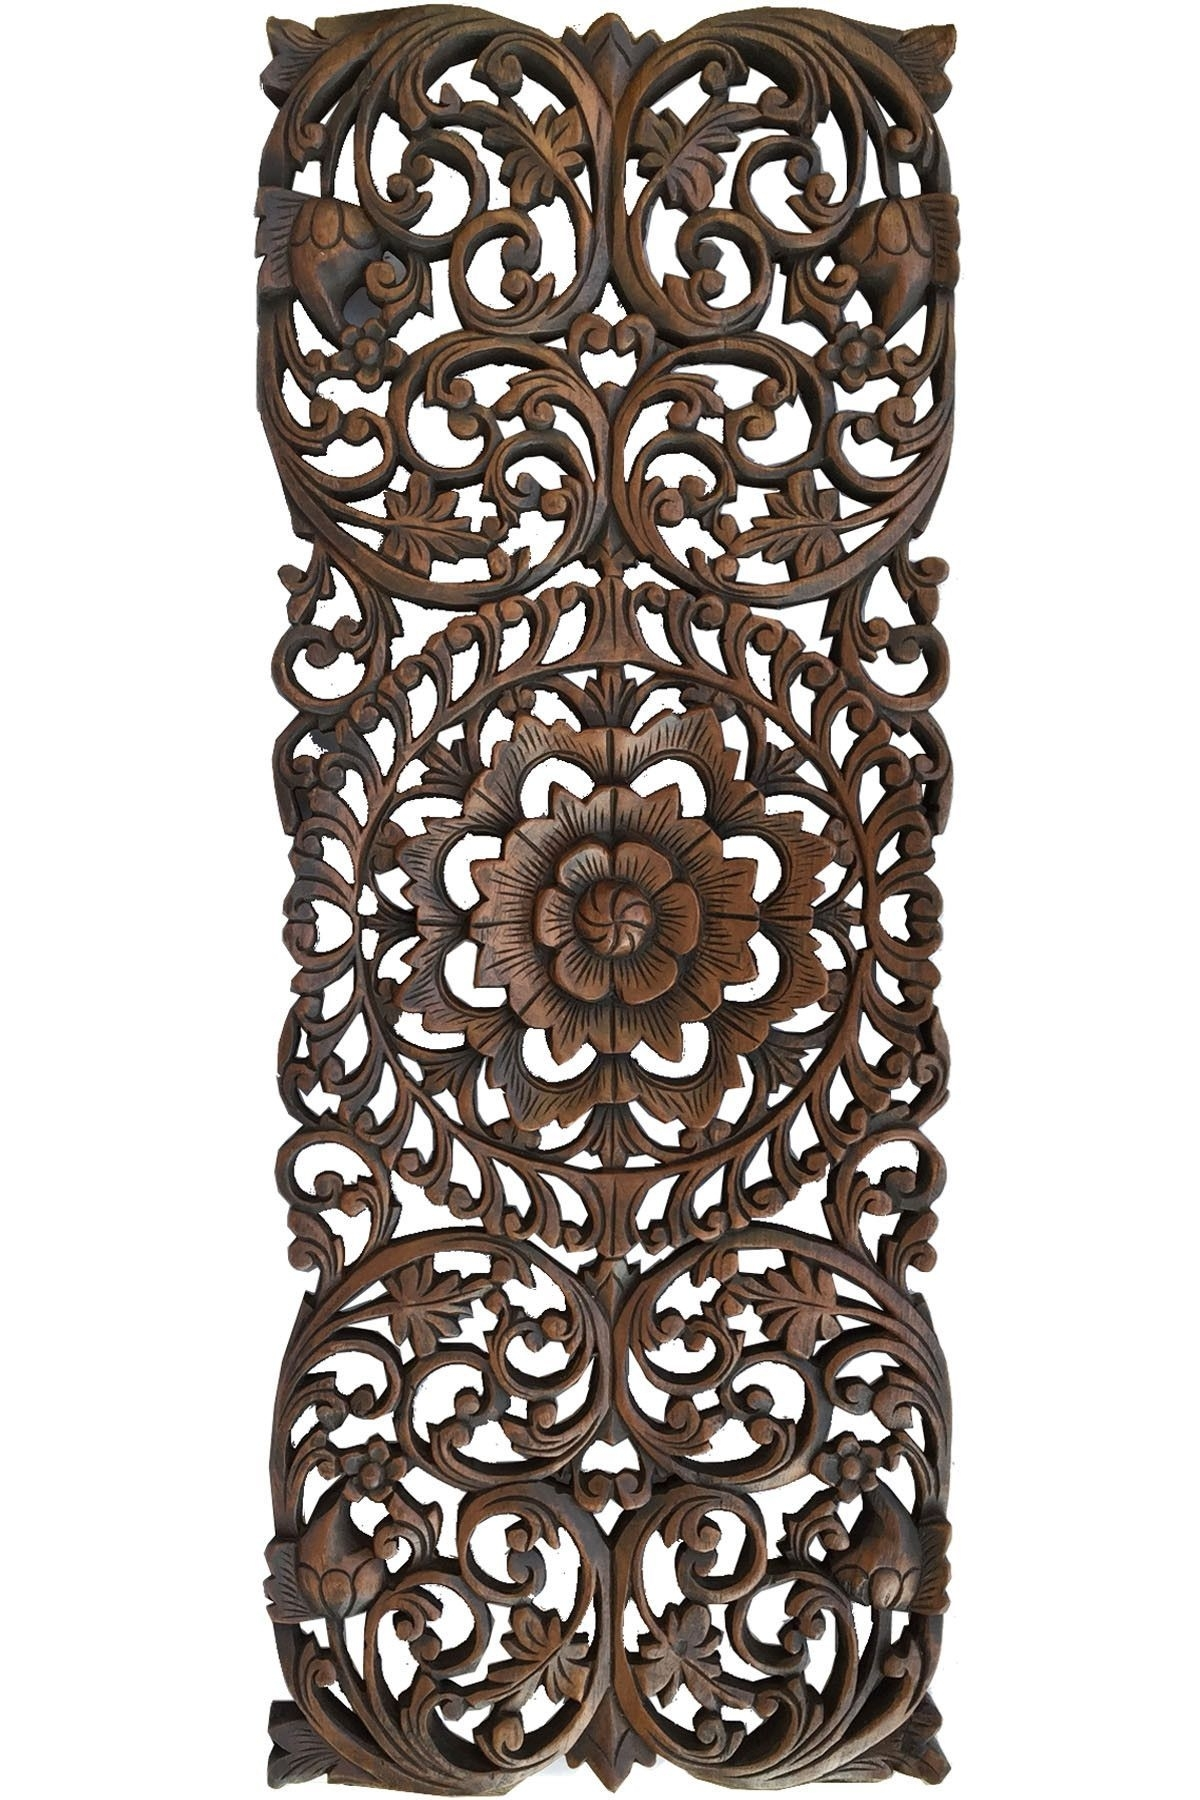 Floral Tropical Carved Wood Wall Panel. Asian Wall Art Home Decor Pertaining To Most Recent Carved Wood Wall Art (Gallery 13 of 15)